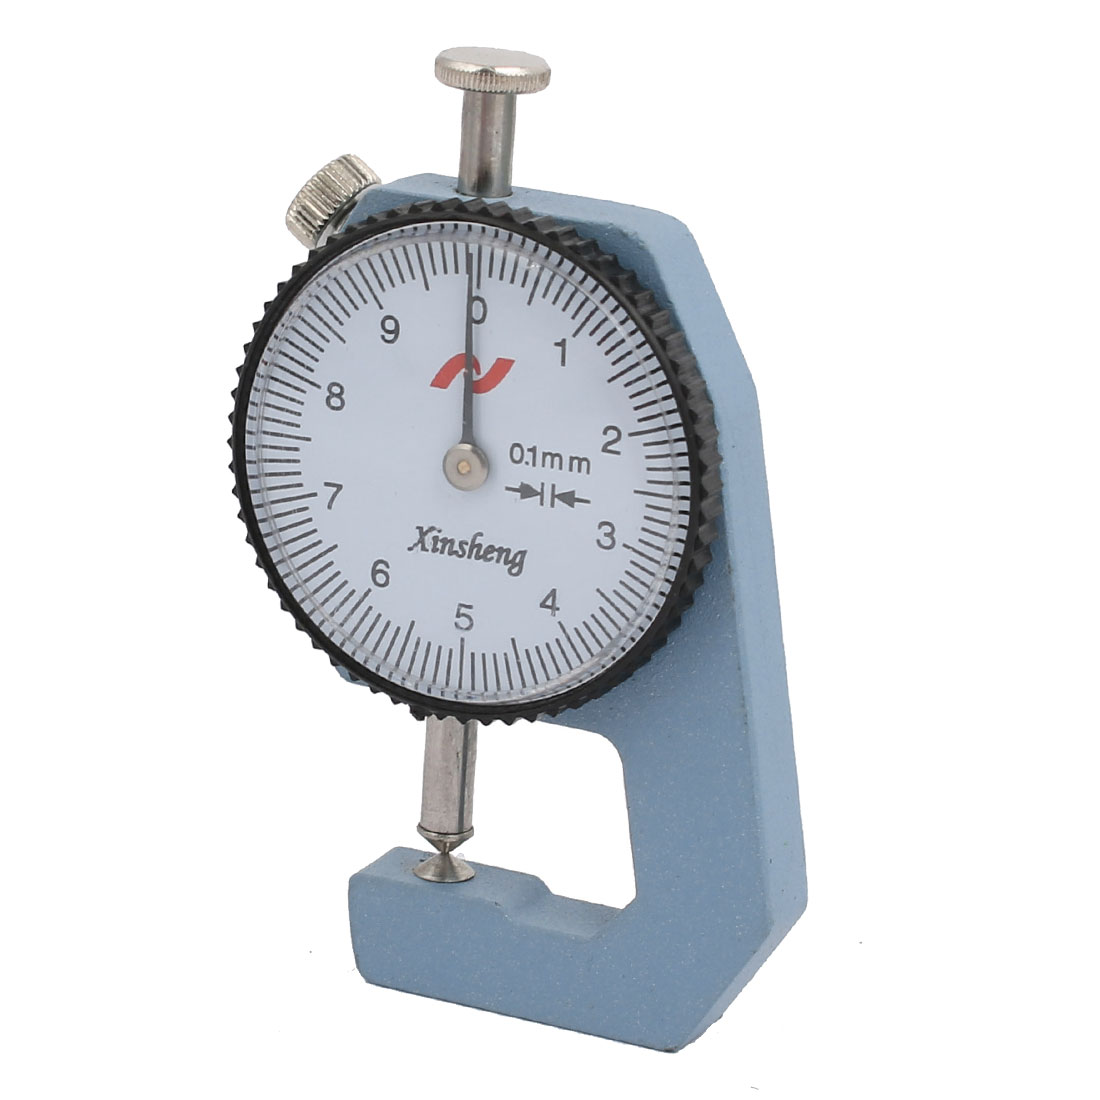 0-10mm Range Measuring Tool 0.01mm Resolution Round Dial Thickness Gauge